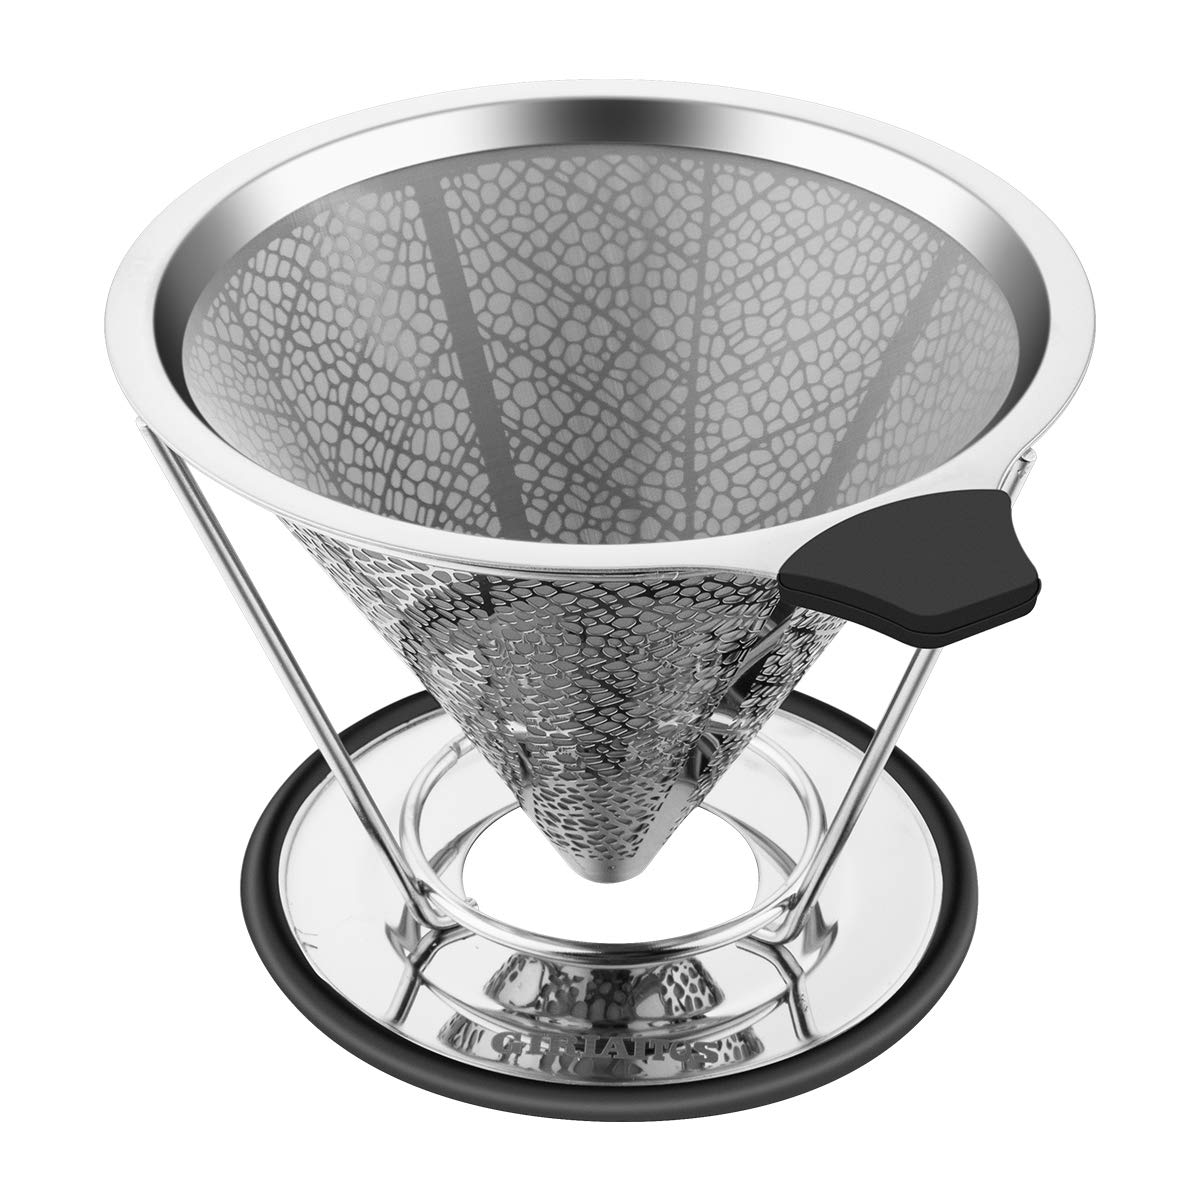 Pour Over Coffee Dripper, GRATU Stainless Steel Coffee Filters Cone with Stand Reusable Paperless Pour Over Coffee Maker for 1-4 Cup